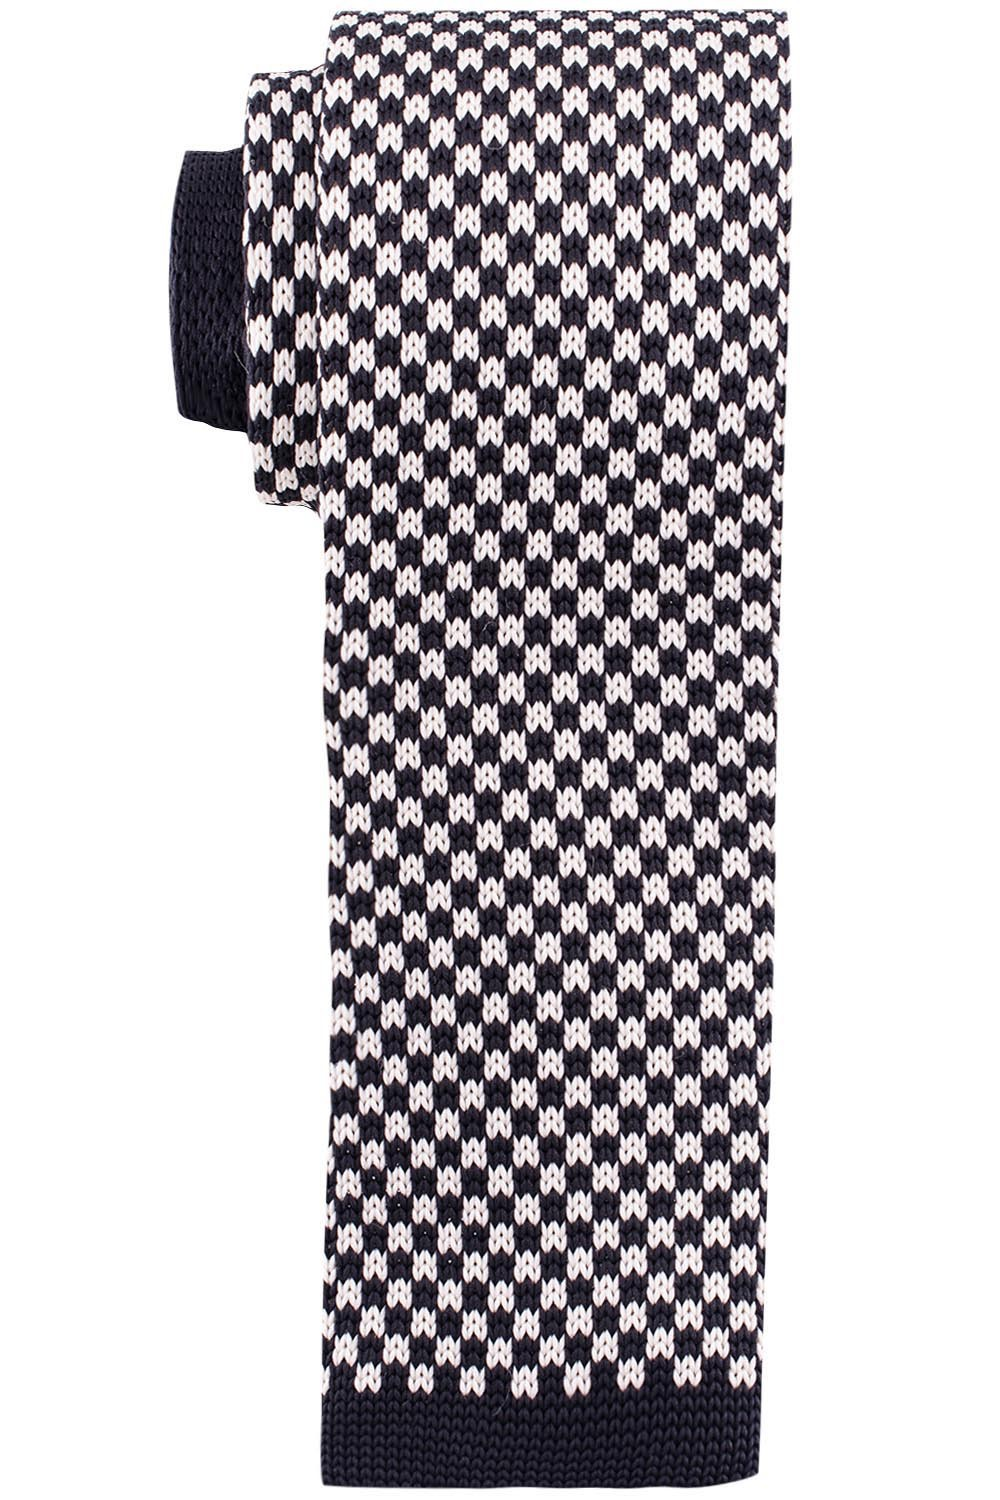 Black and White Plaid Slim Handmade Knitted Necktie